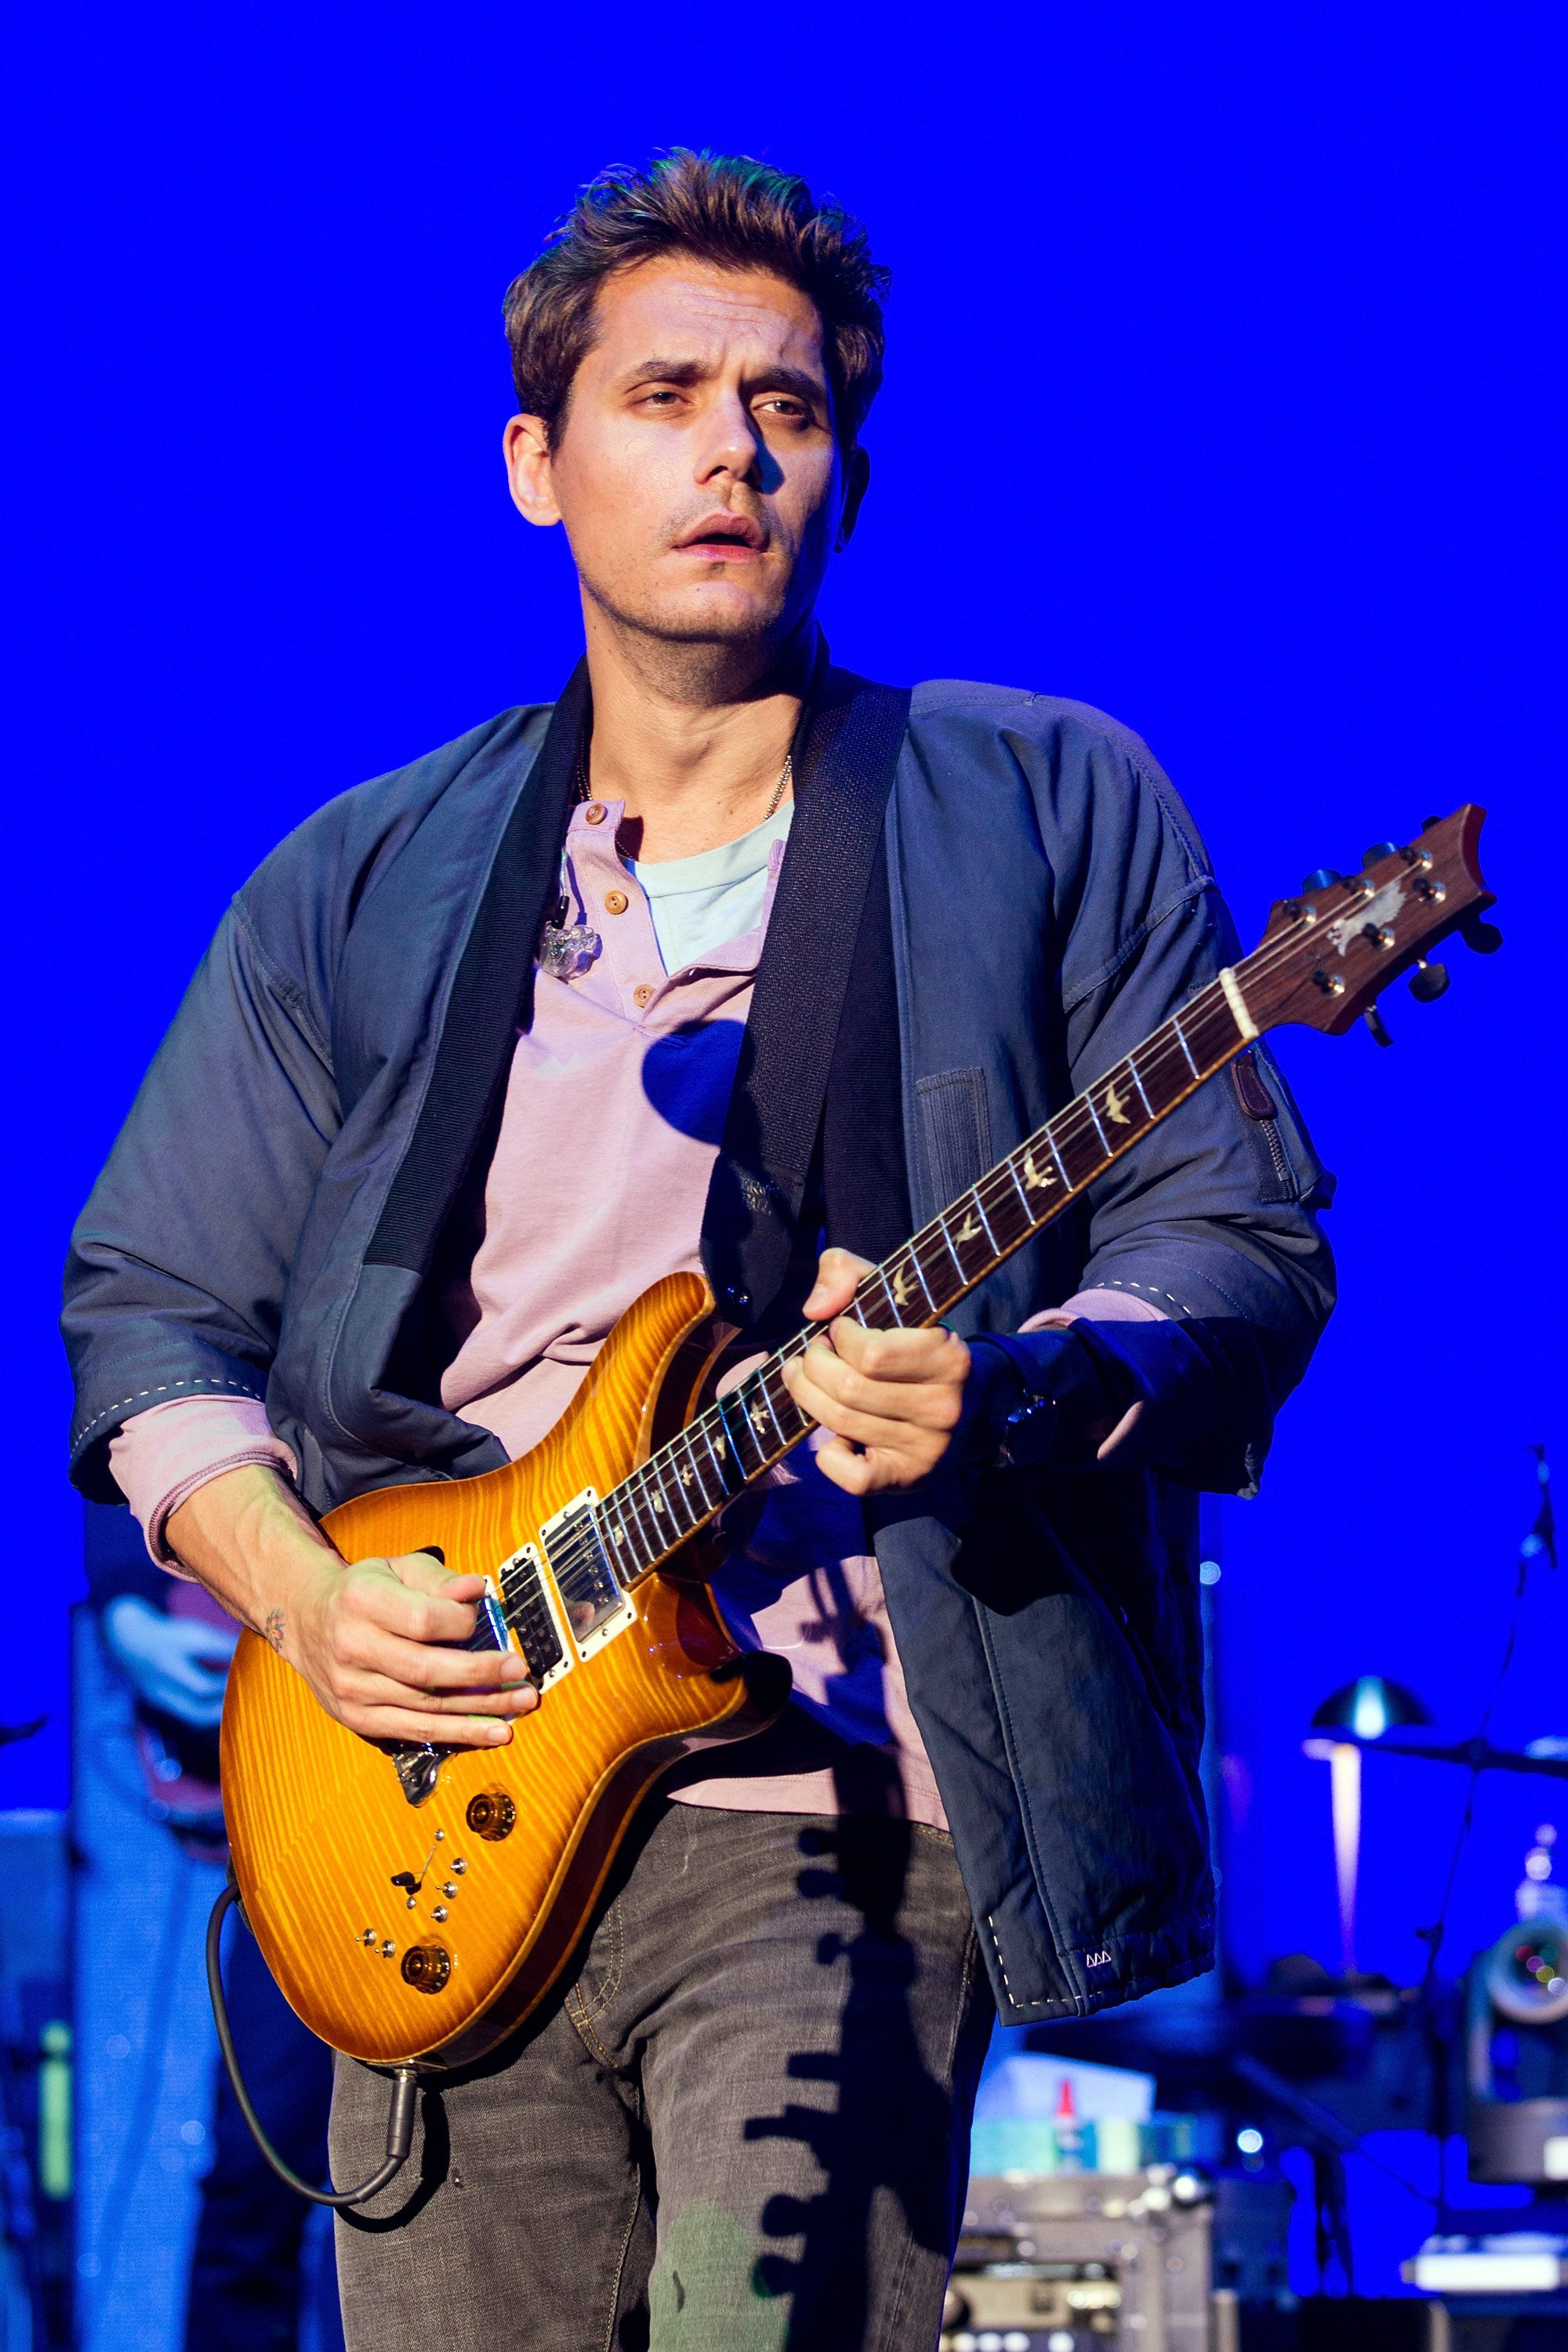 John Mayer Got a Restraining Order Against an Obsessed Fan and the Details Are So Disturbing